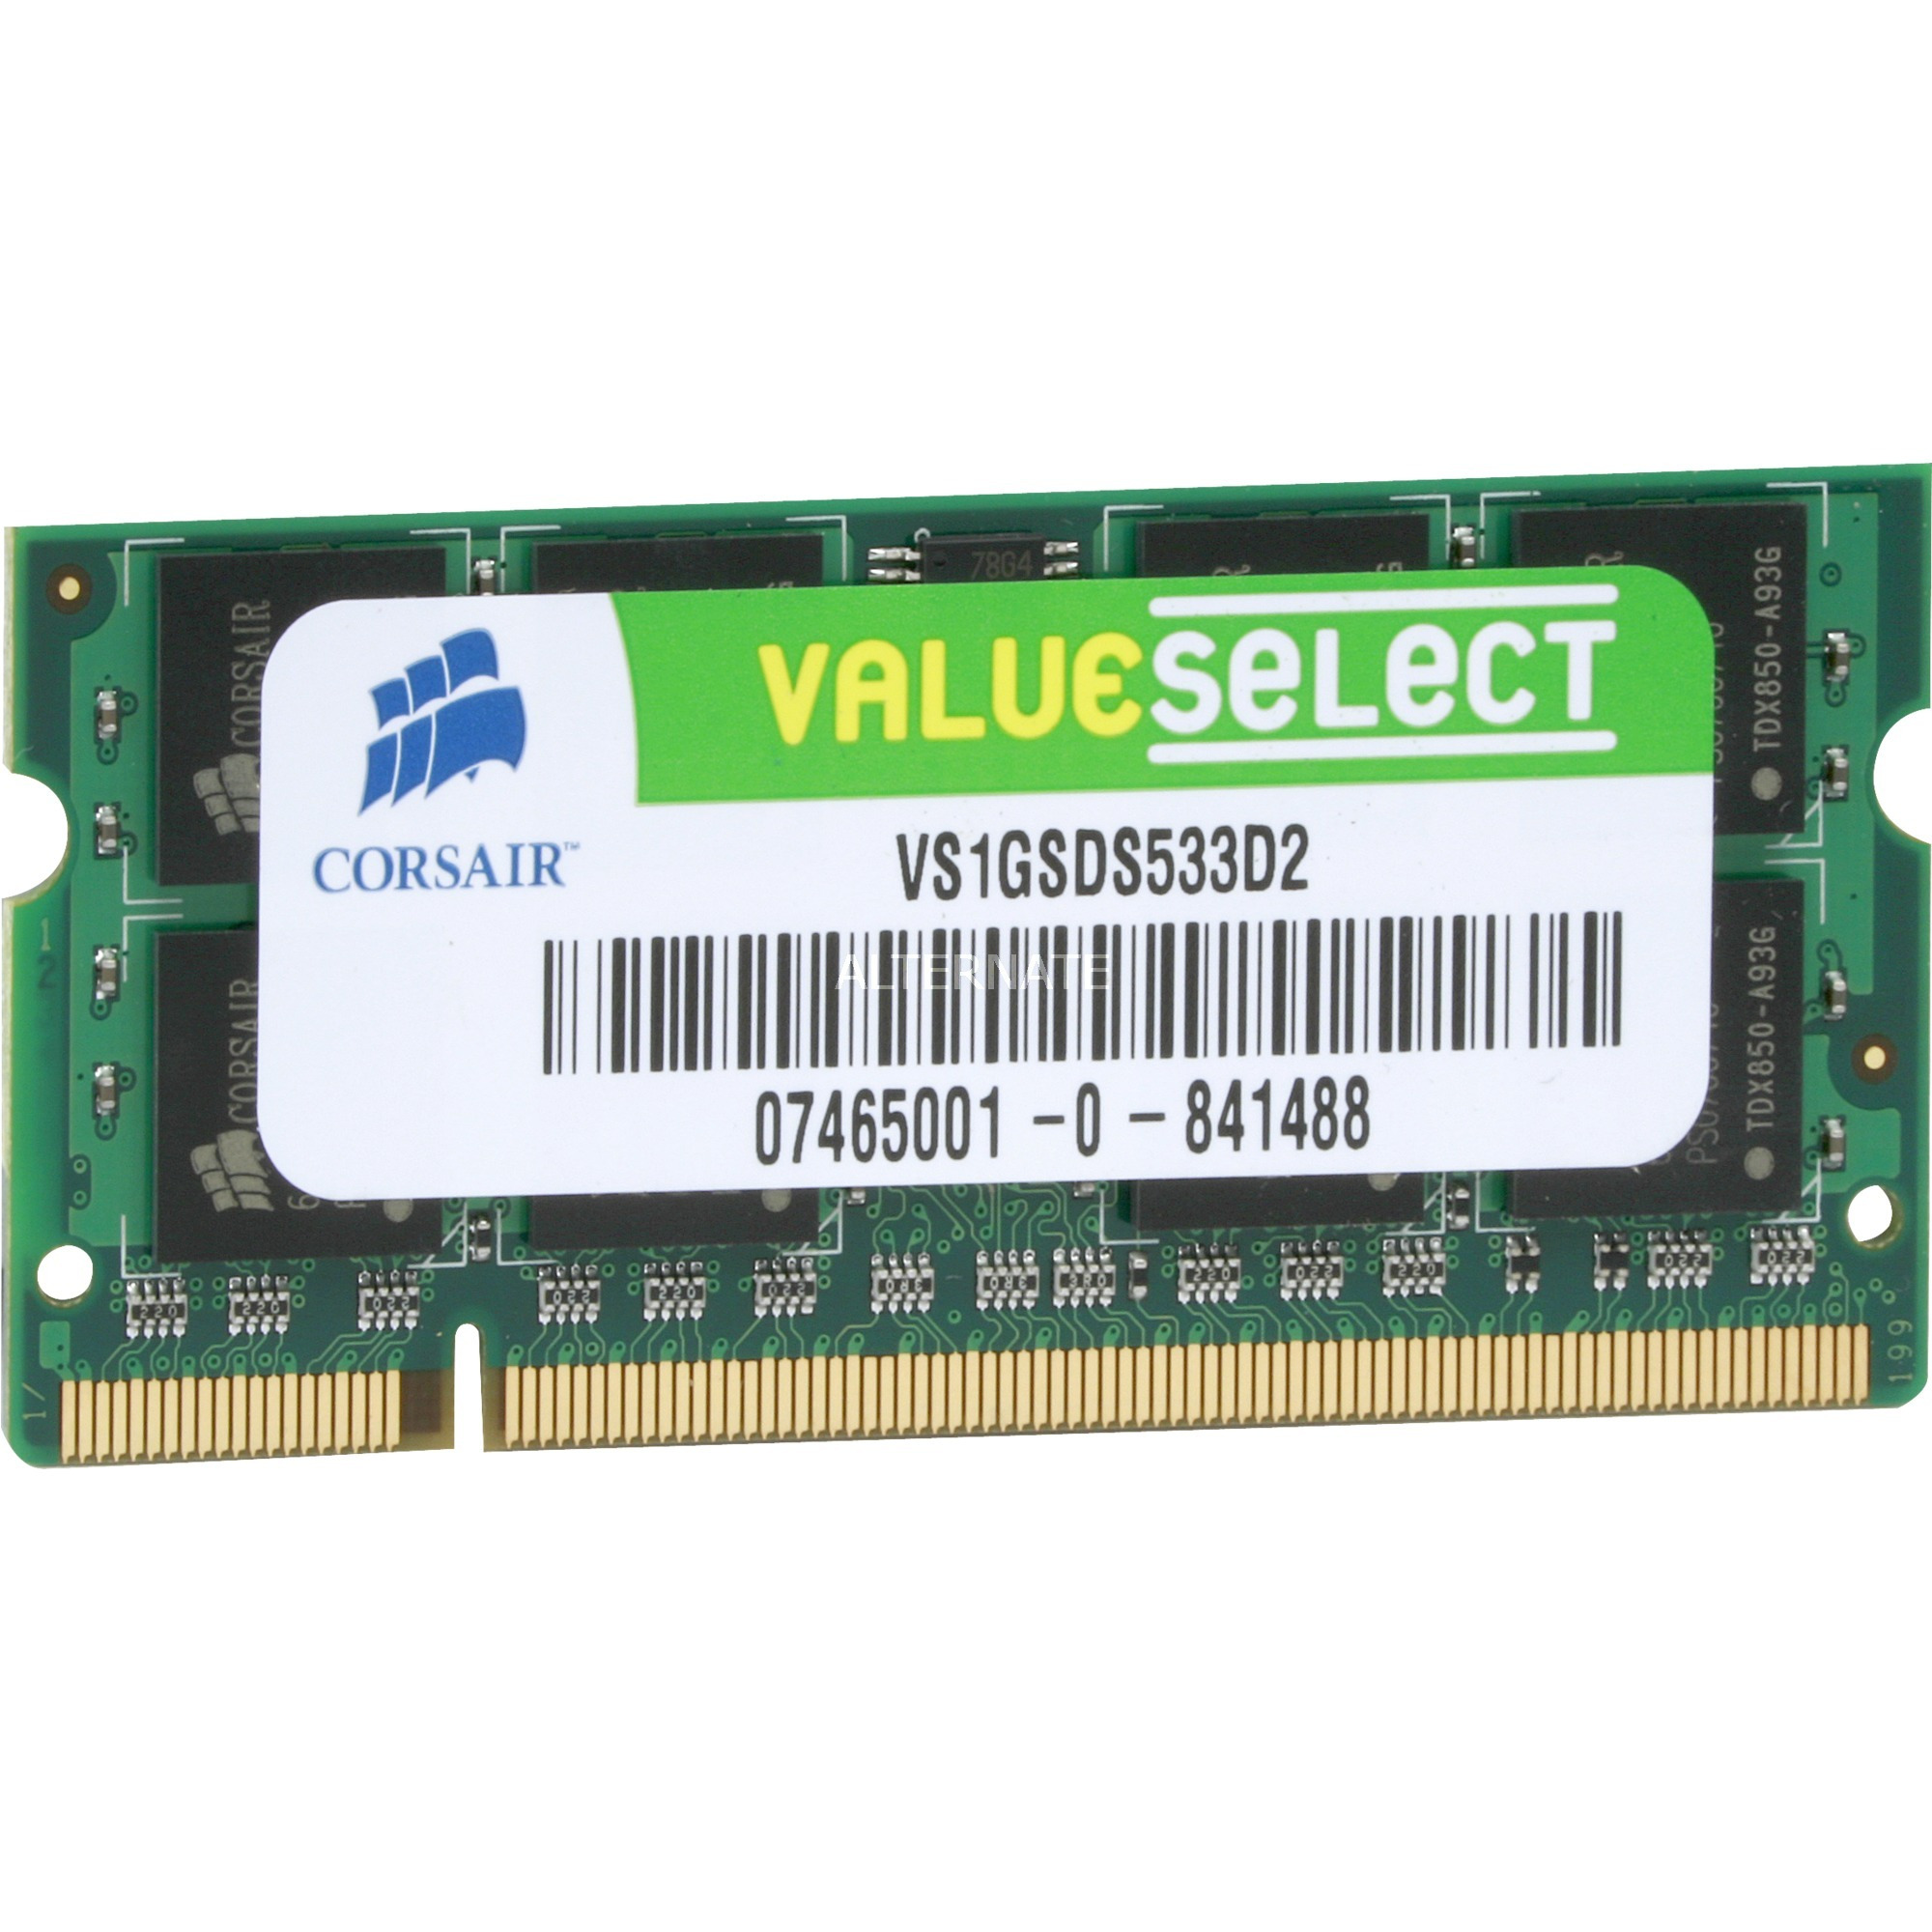 1GB DDR2 SDRAM SO-DIMMs 1GB DDR2 533MHz módulo de memoria, Memoria RAM